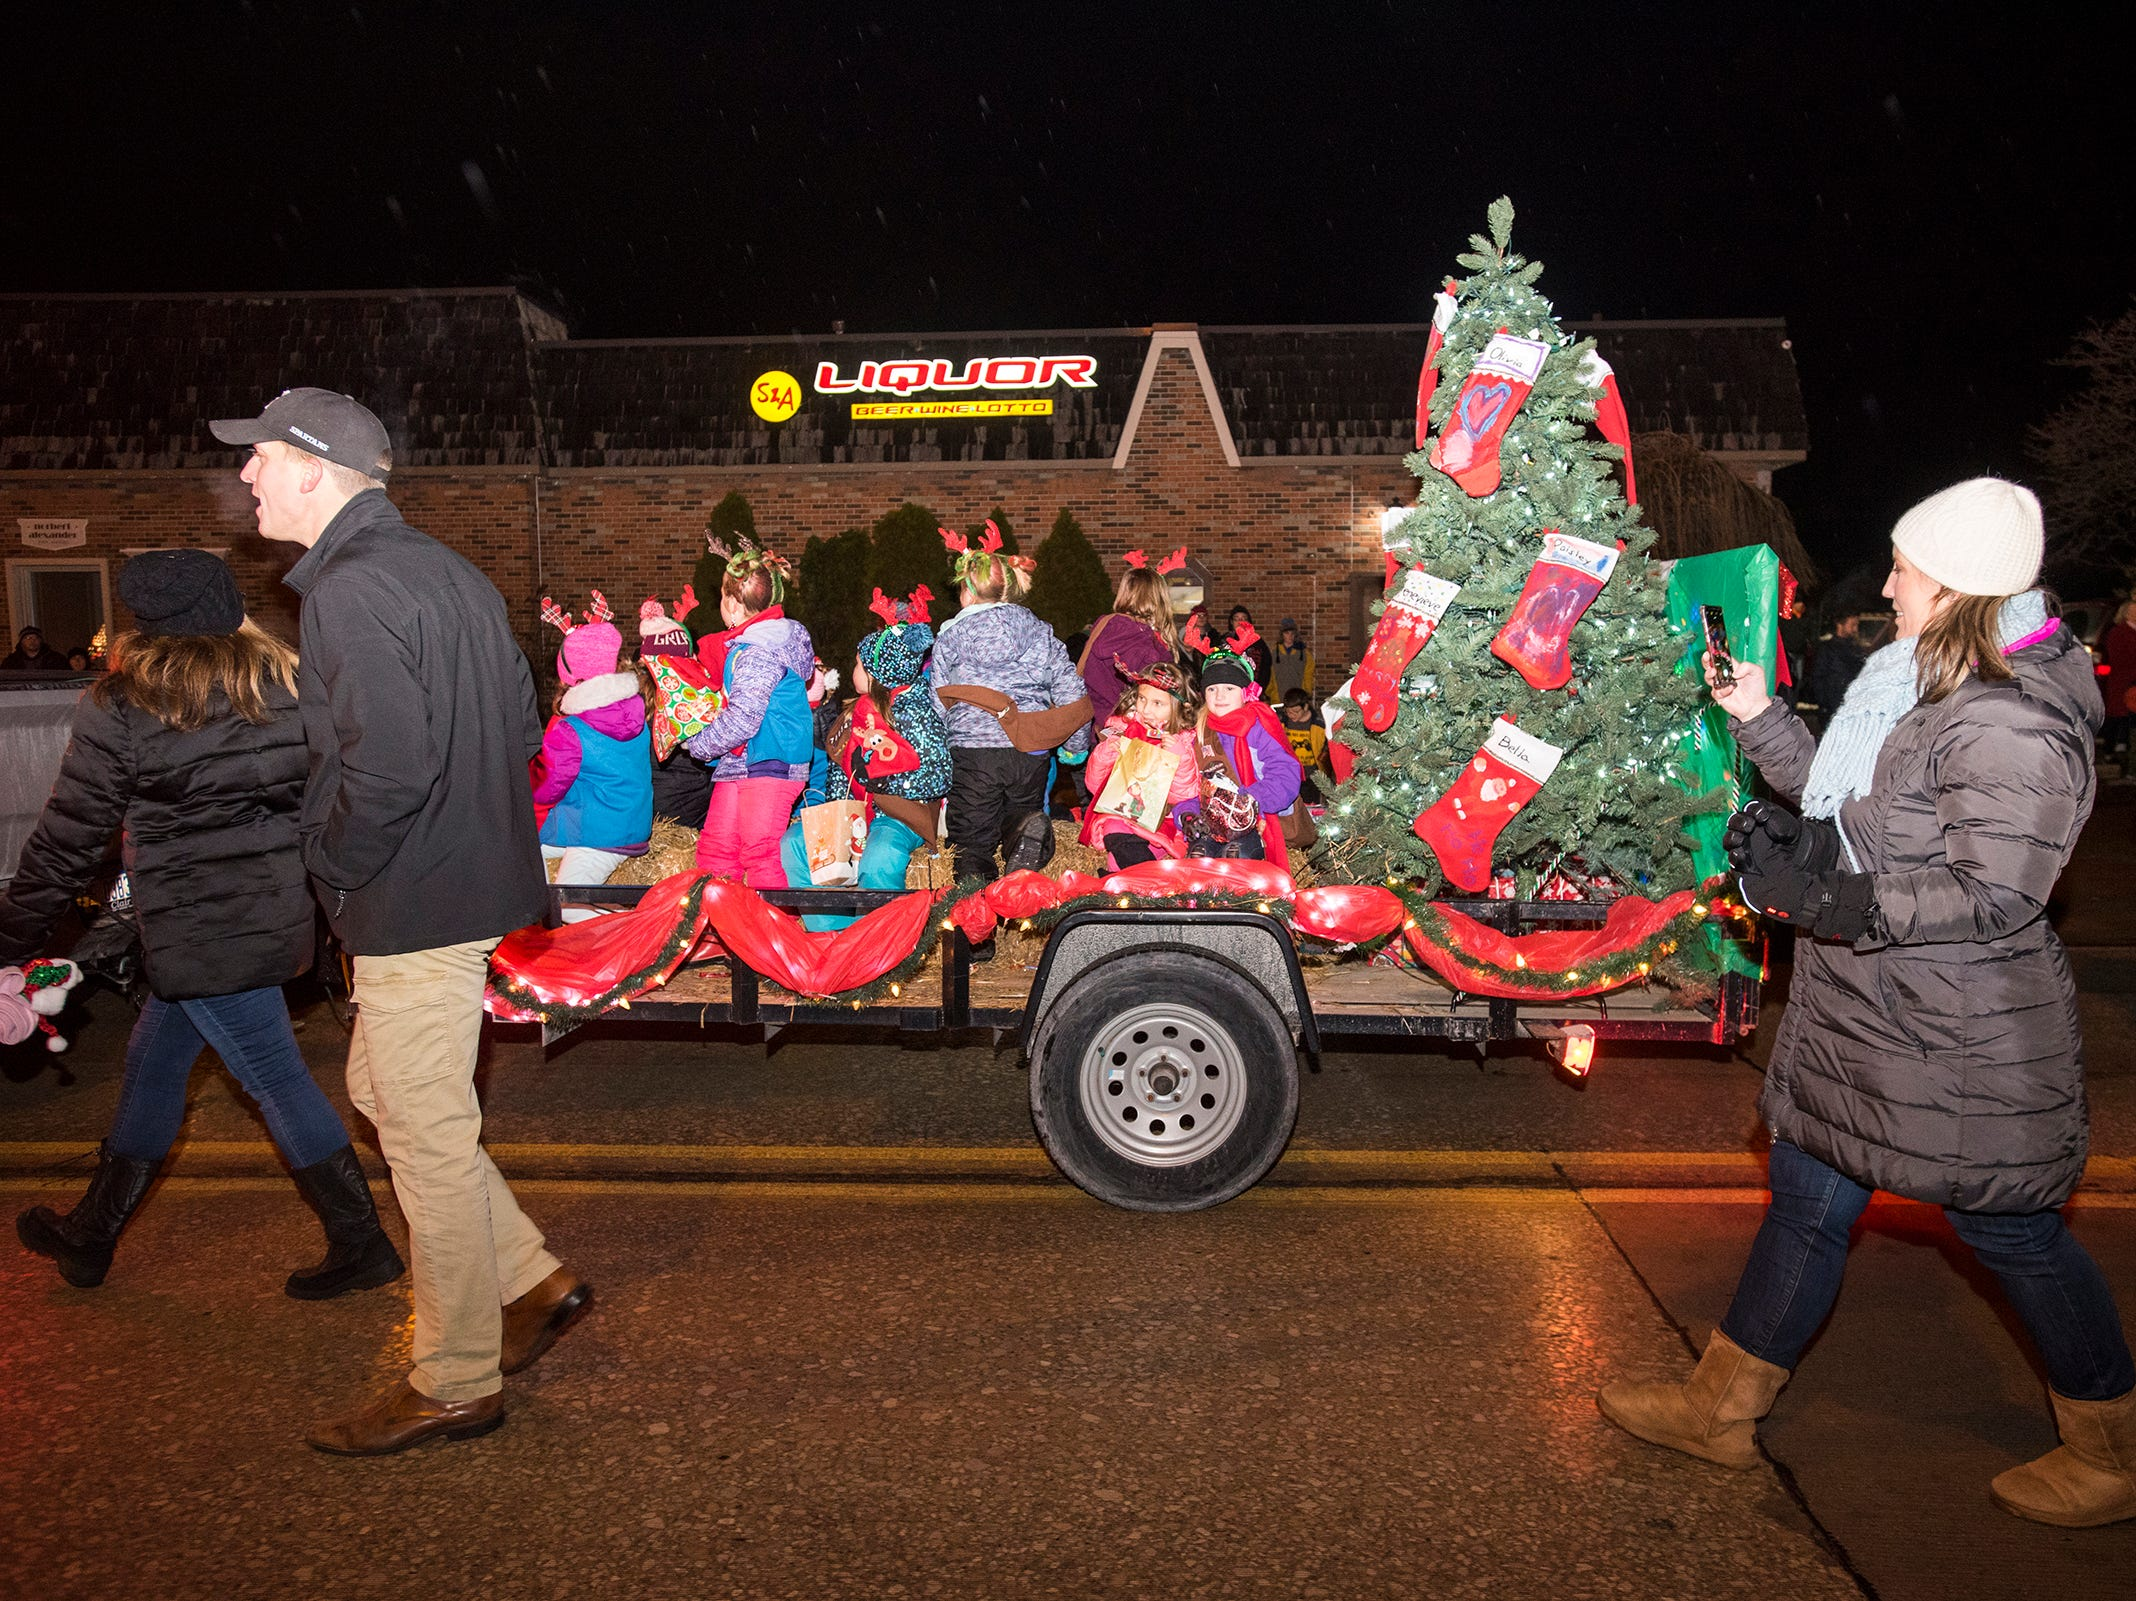 Kids ride on a lighted float Friday, Nov. 16, 2018 during the St. Clair Lighted Santa Parade.